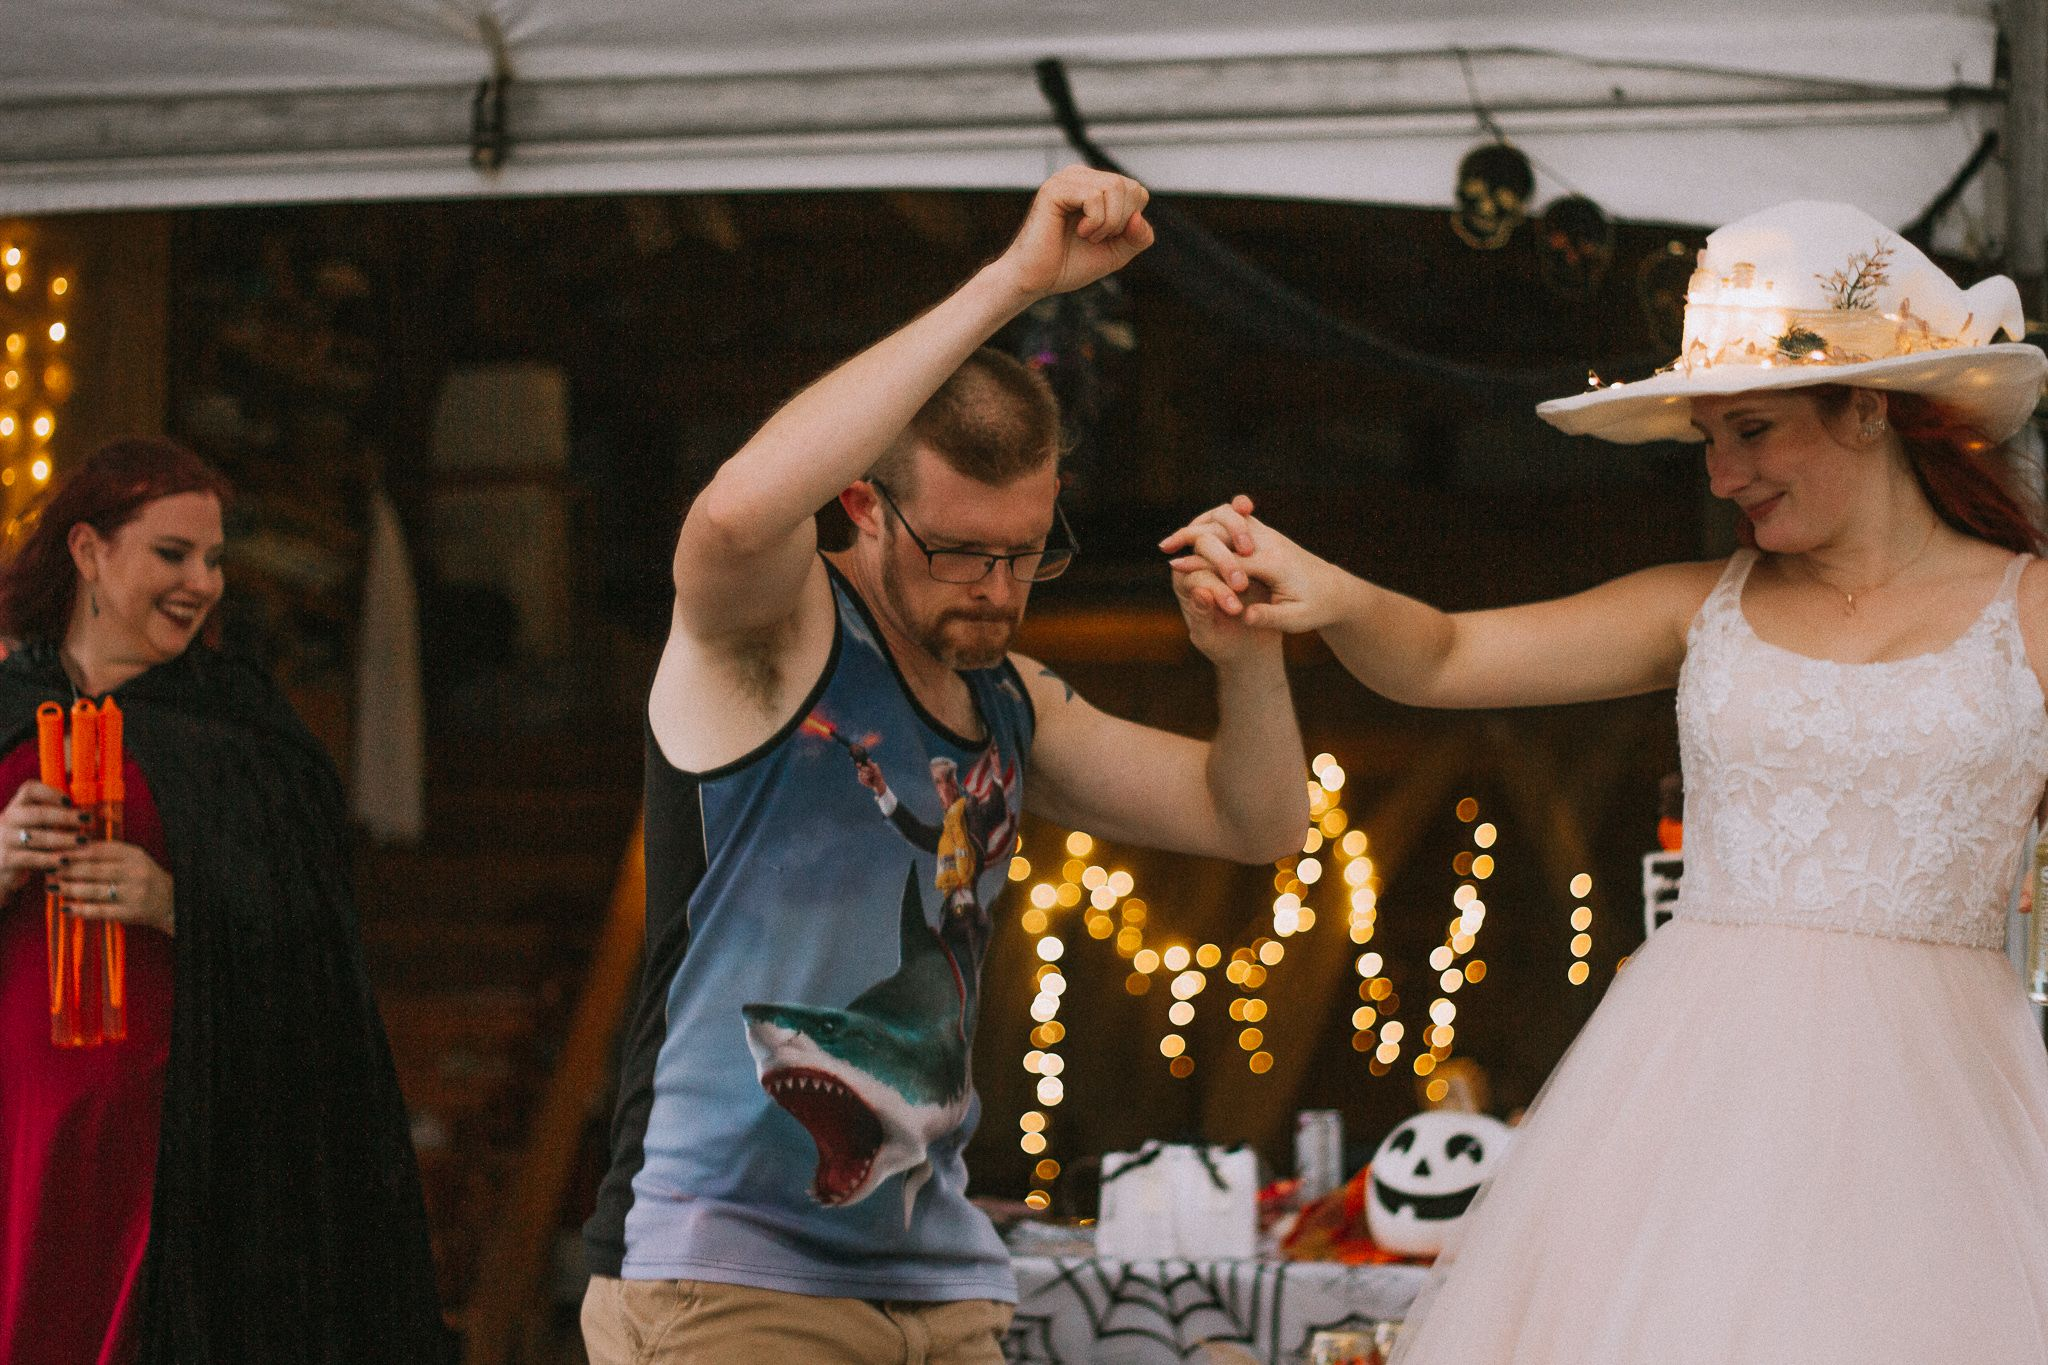 groom showing off his move in front of bride